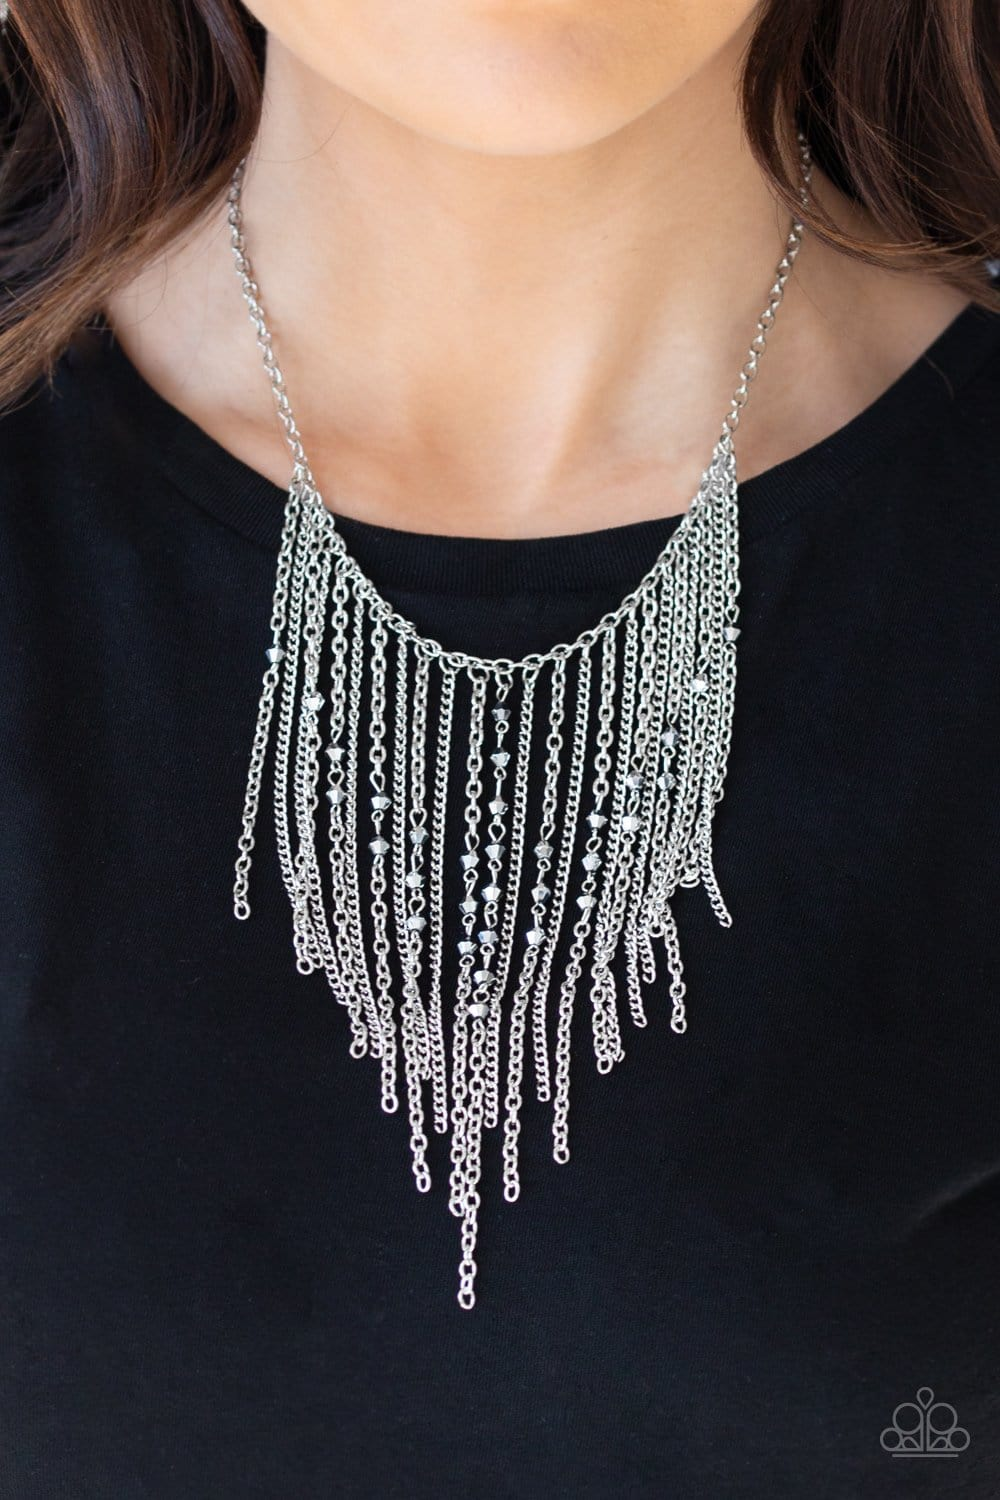 First Class Fringe - Silver: Paparazzi Accessories - Jewels N' Thingz Boutique